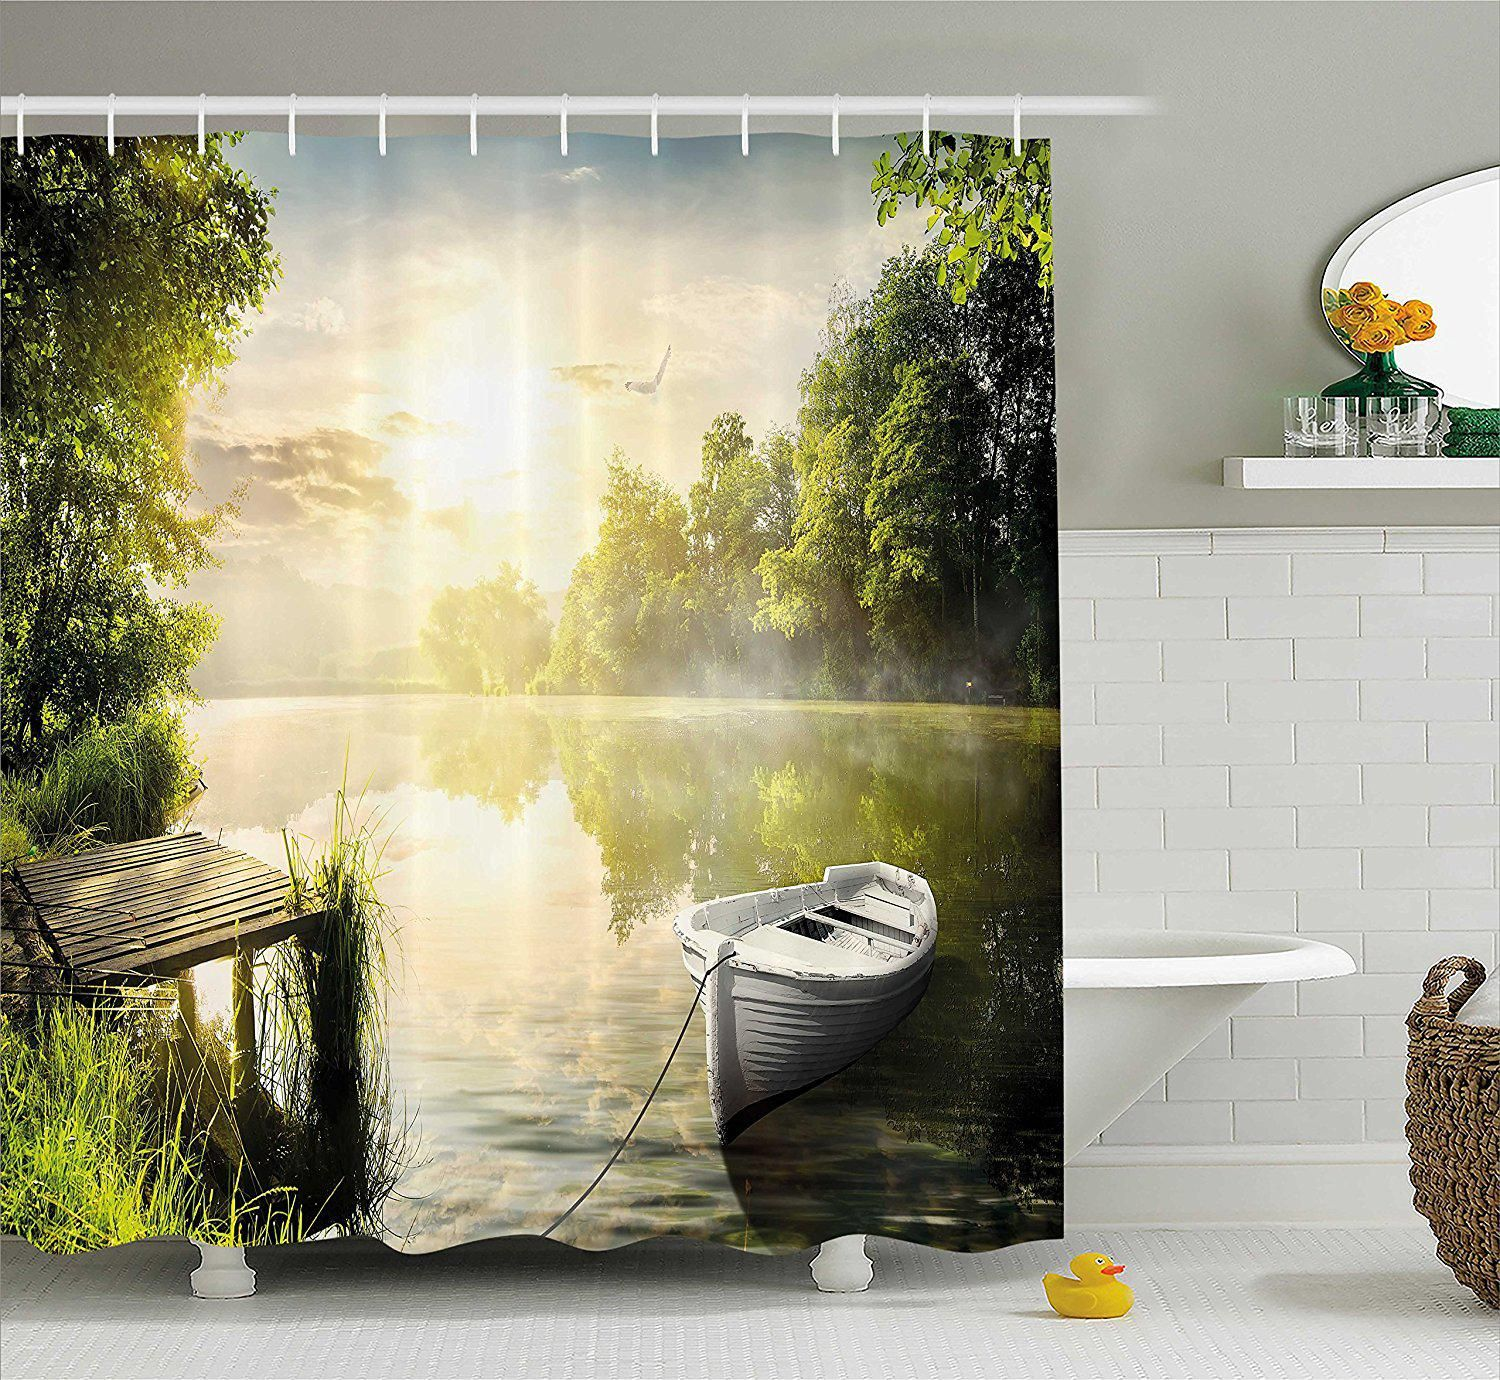 Nature Shower Curtain Boat By The Foggy Lake Deck Dreamy Forest In Us 16 94 Country Decor Diy Country Style Bathrooms Bathroom Decor Sets